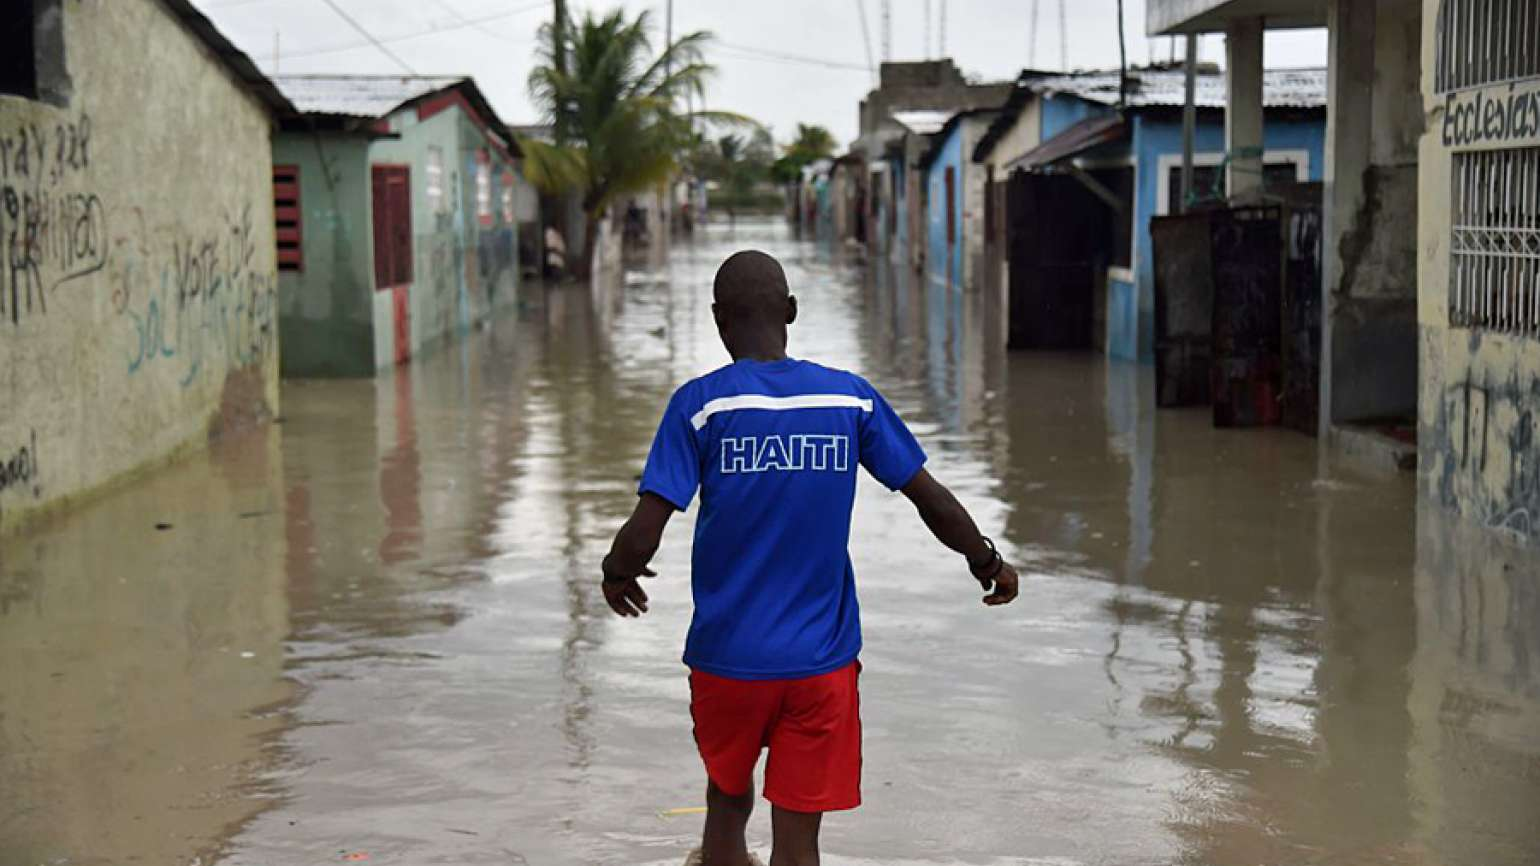 A child walks through flooded streets in Haiti